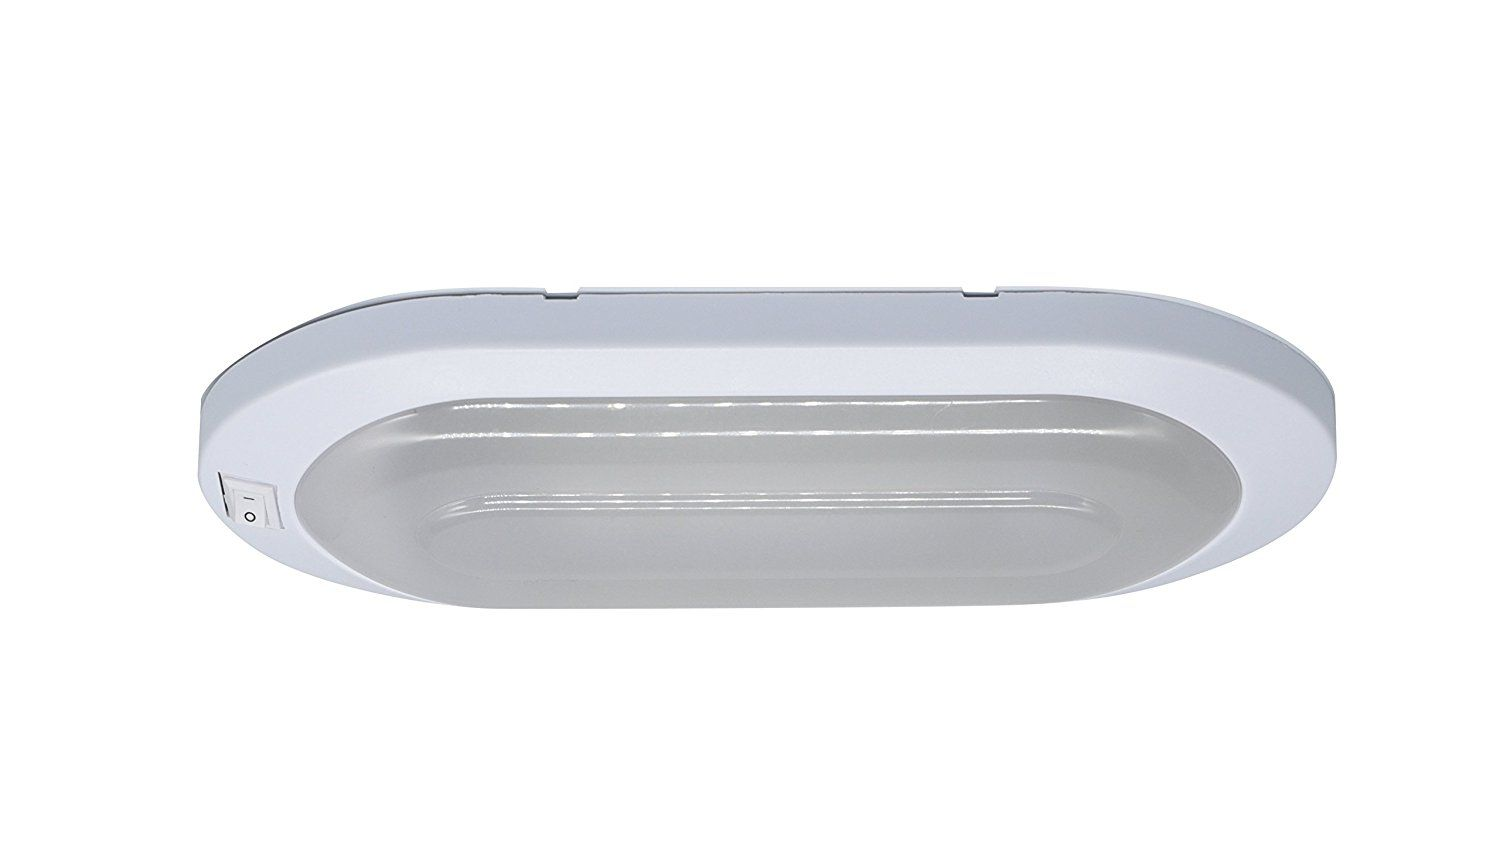 Amazon Com Facon New Led 12v Bright Pancake Light Interior Ceiling Dome Light 6w 470 Lm With On X2f Off Switch Dome Lighting Ceiling Domes Interior Lighting